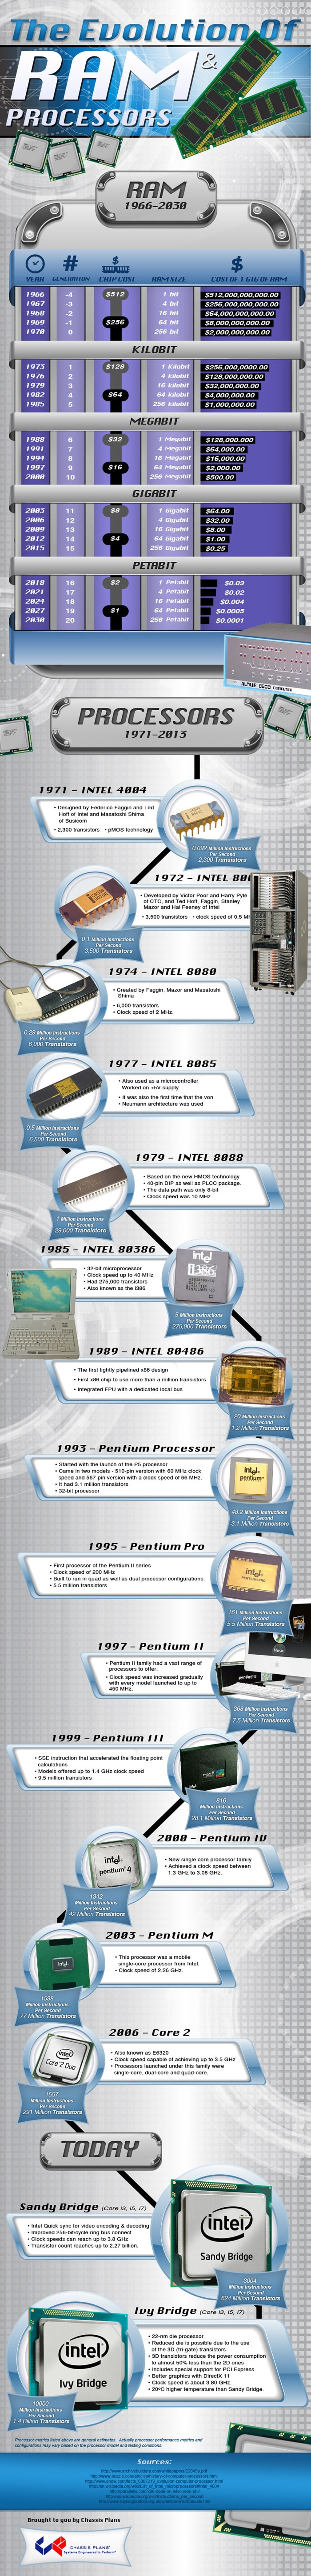 Cost & Tech Evolution Of RAM & Processors [Infographic]